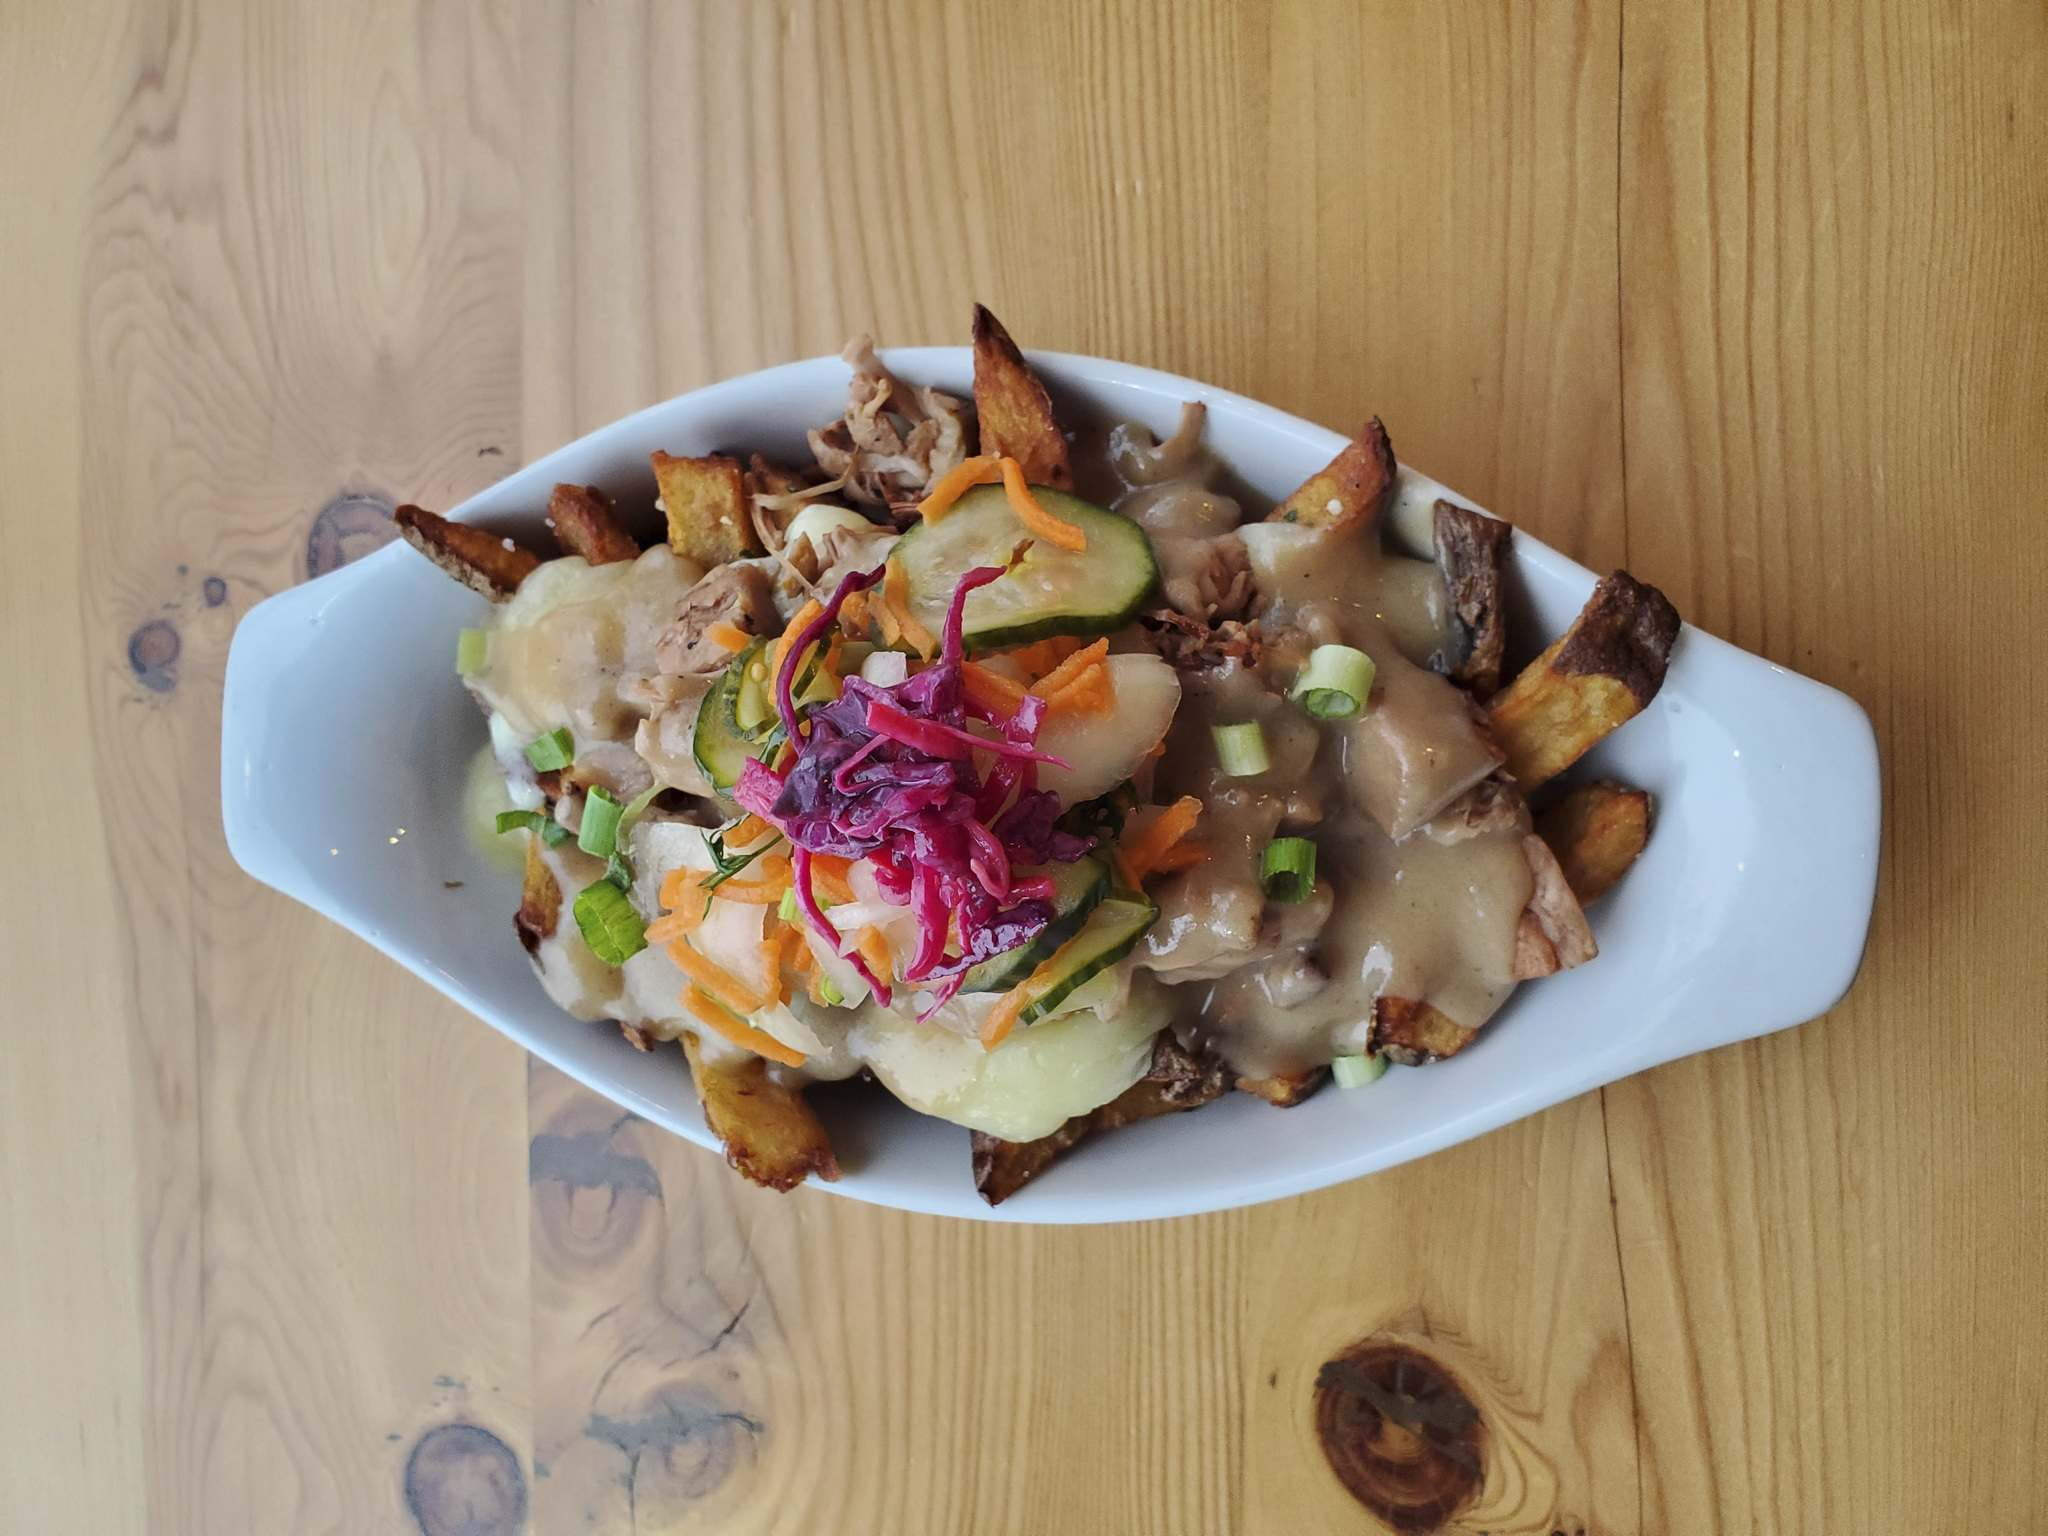 Cocoabeans is serving up beer-braised jackfruit, fresh-cut fries with Bothwell cheese curds, beer gravy and house-pickled vegetables. Gluten-free with a dairy-free and vegan option.</p></p>